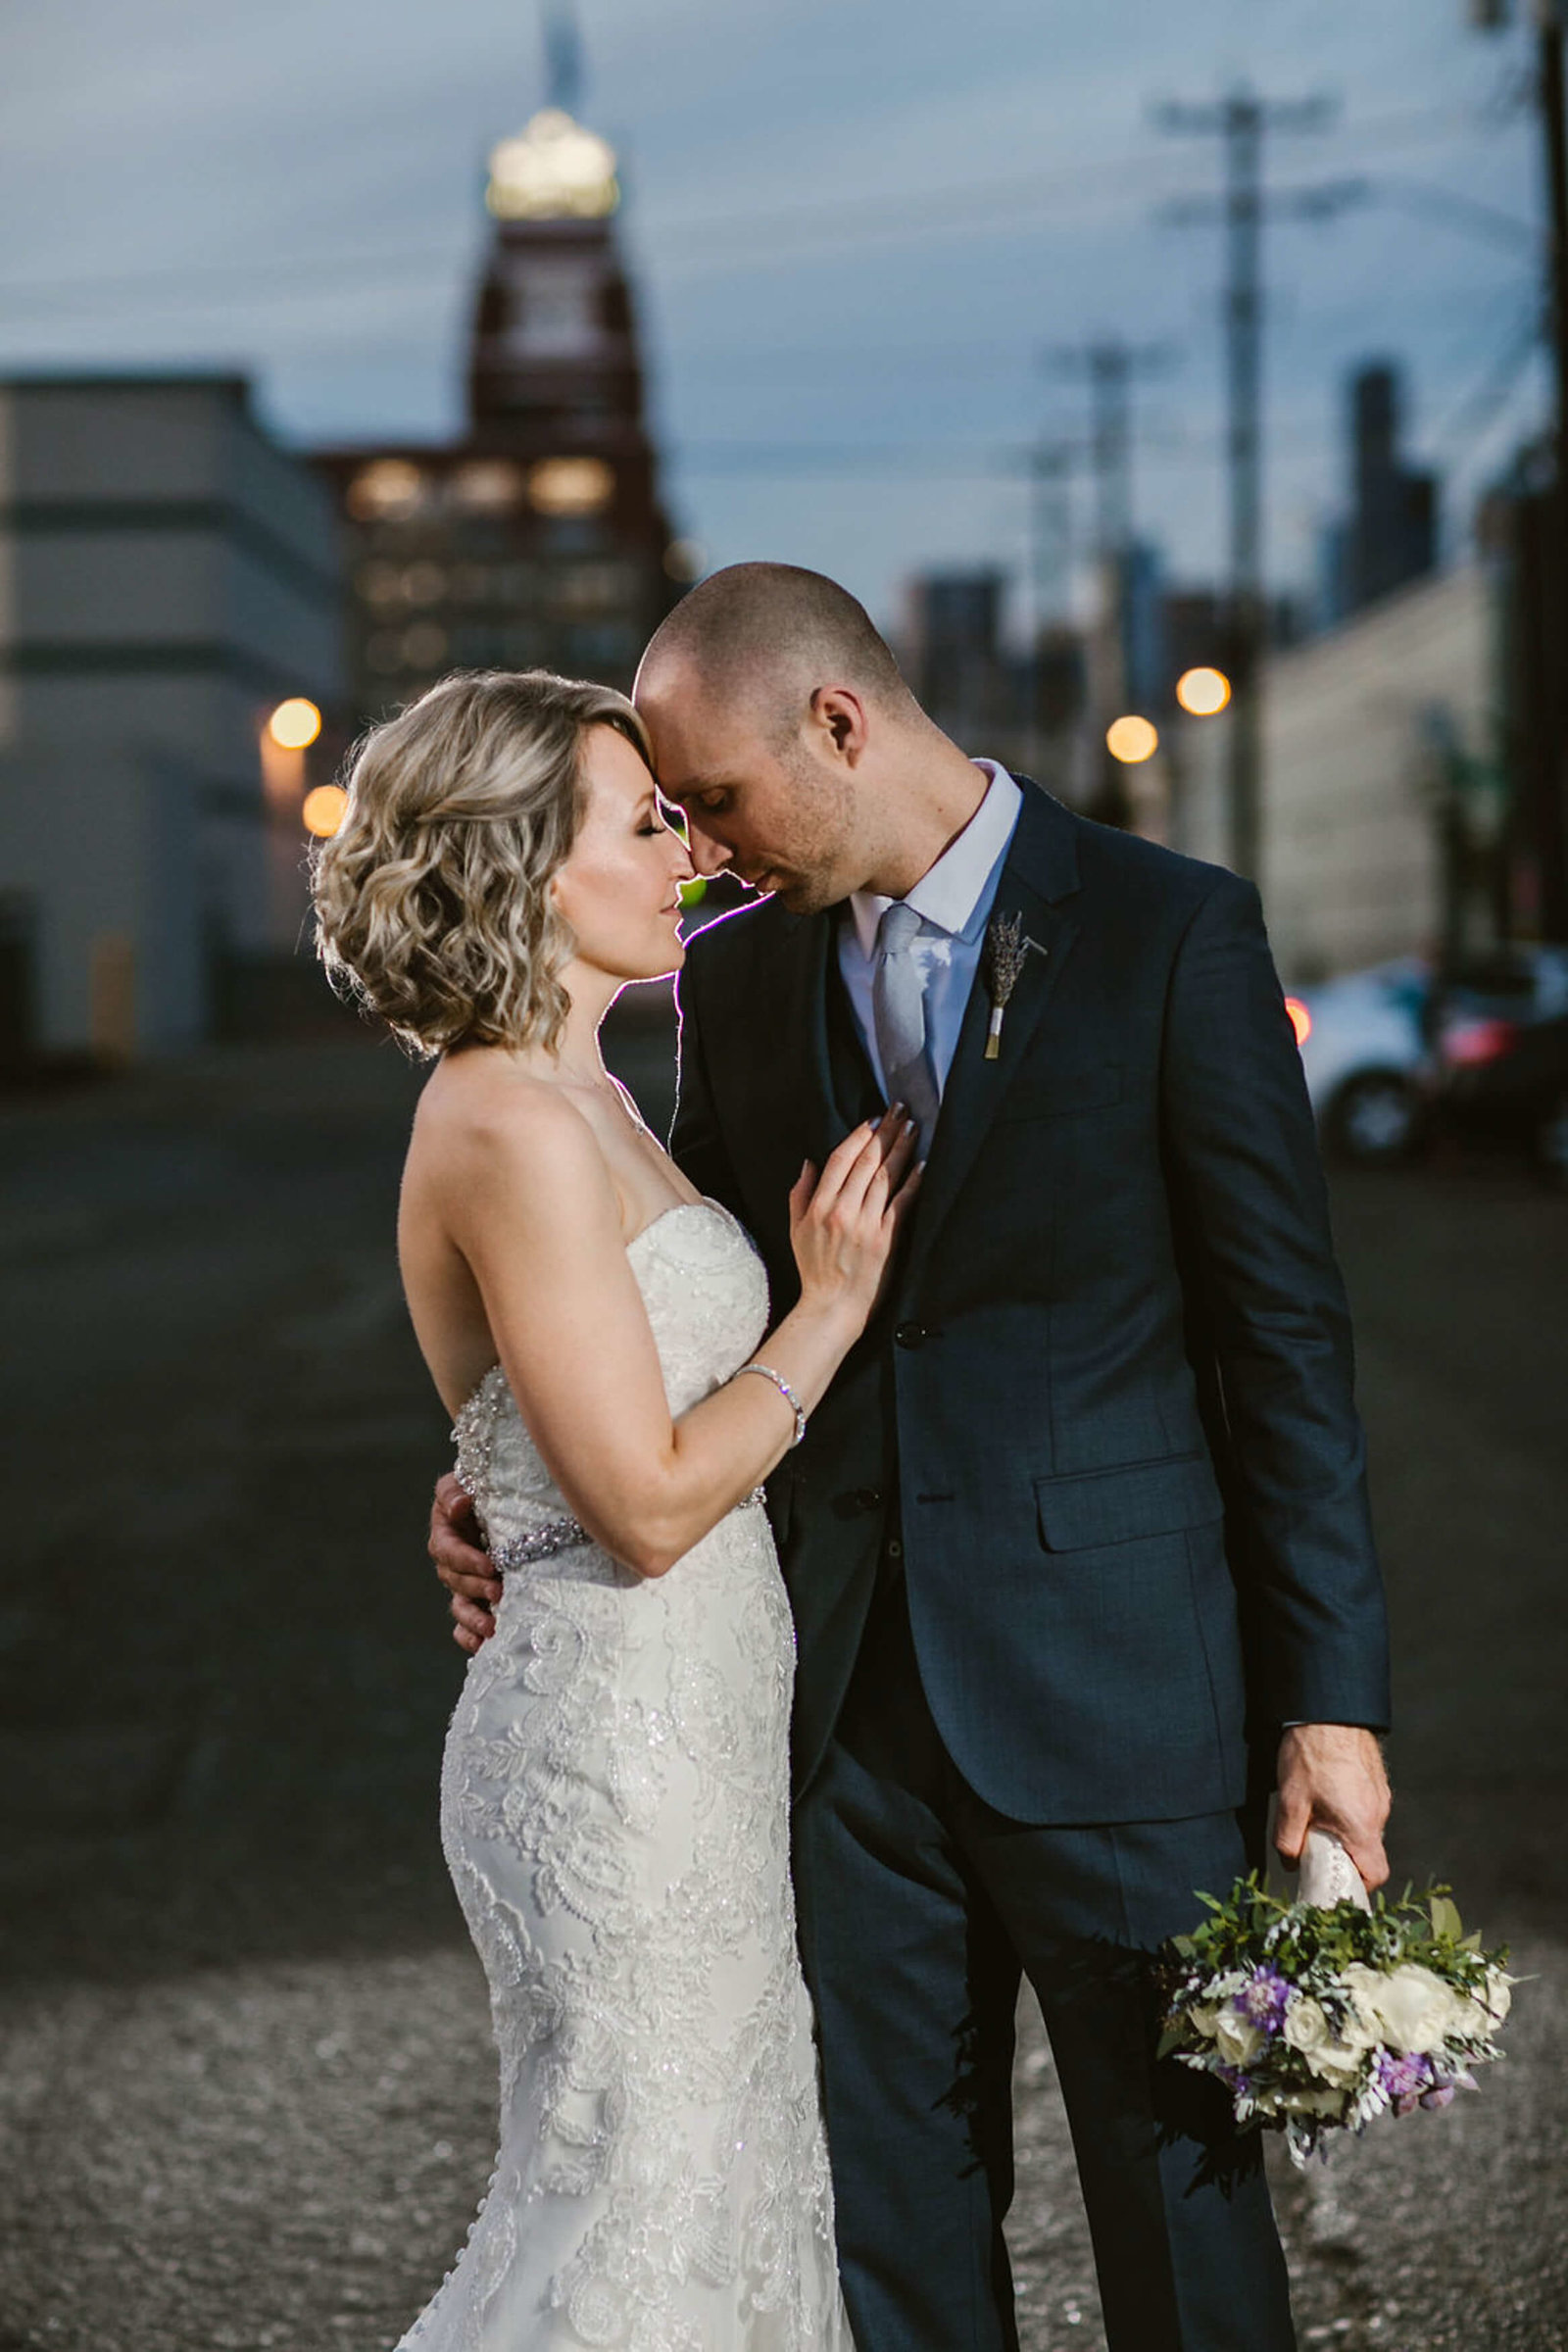 Amy+Clint_Within_Sodo_wedding_seattle_by_Adina_Preston_Weddings_163